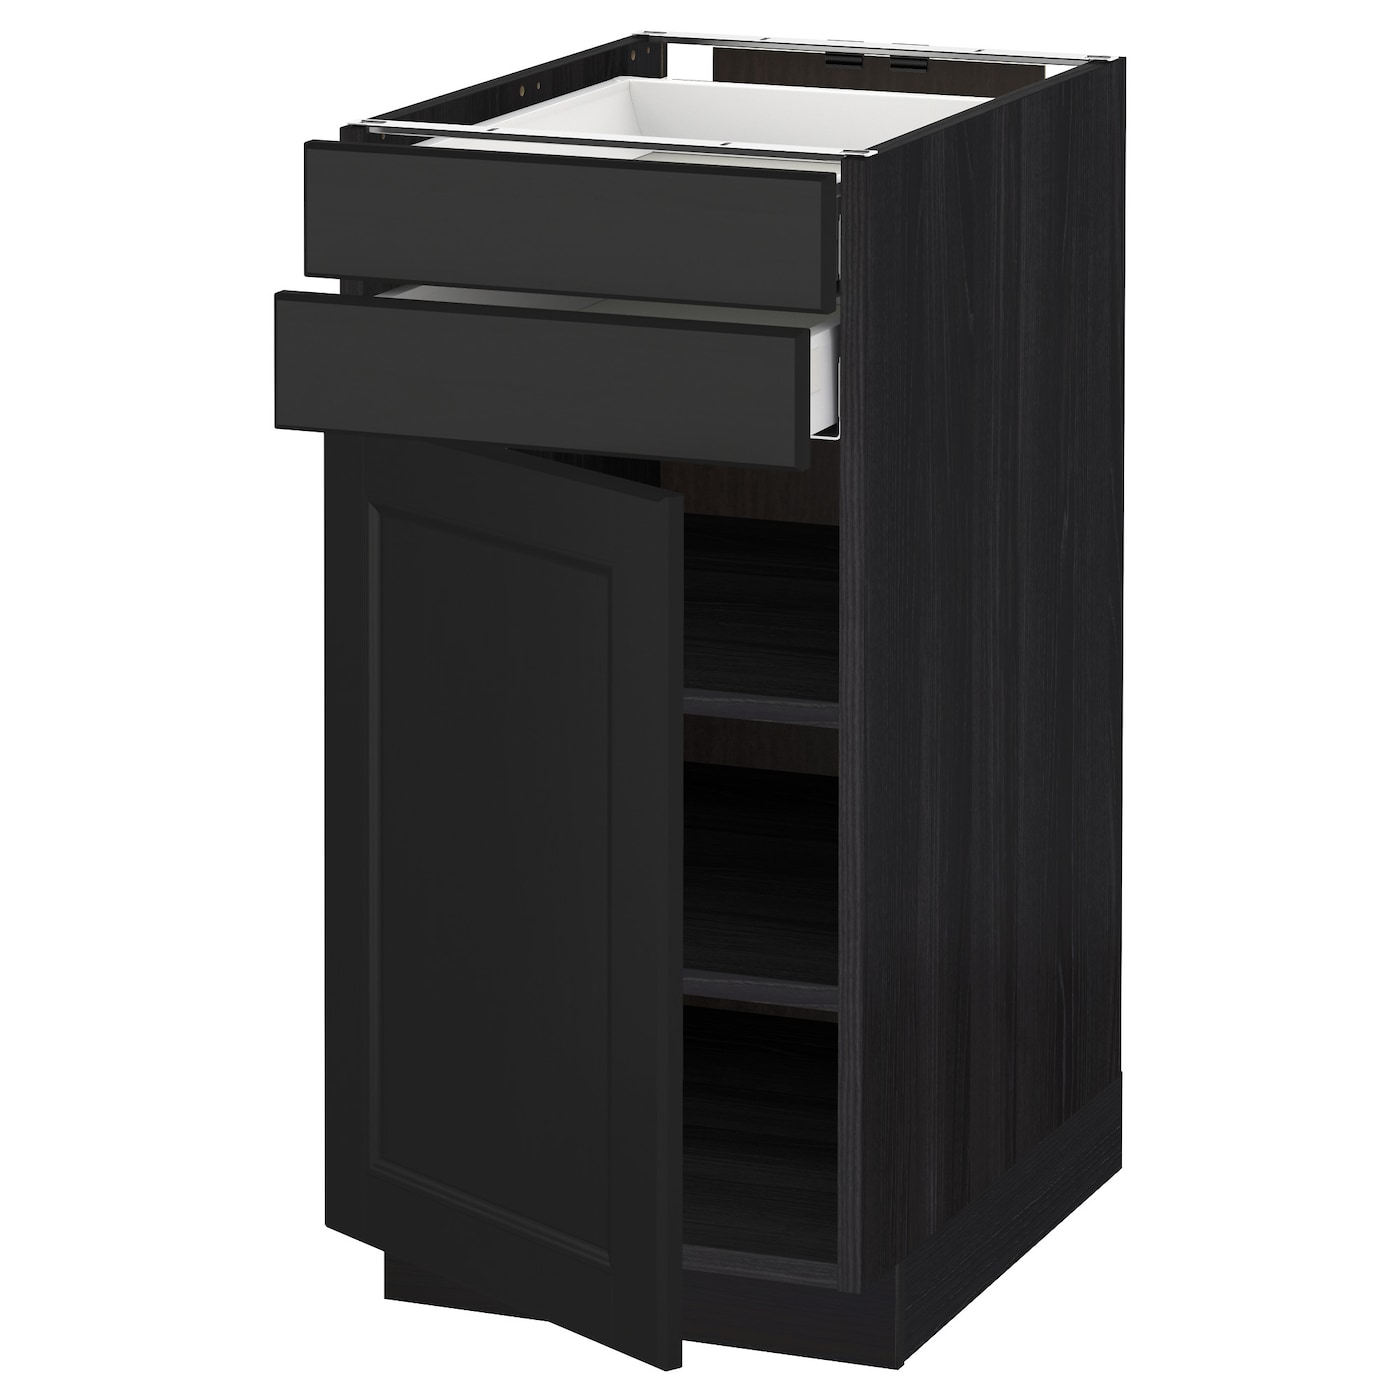 base drawer kitchen cabinets metod maximera base cabinet w door 2 drawers black laxarby 10948